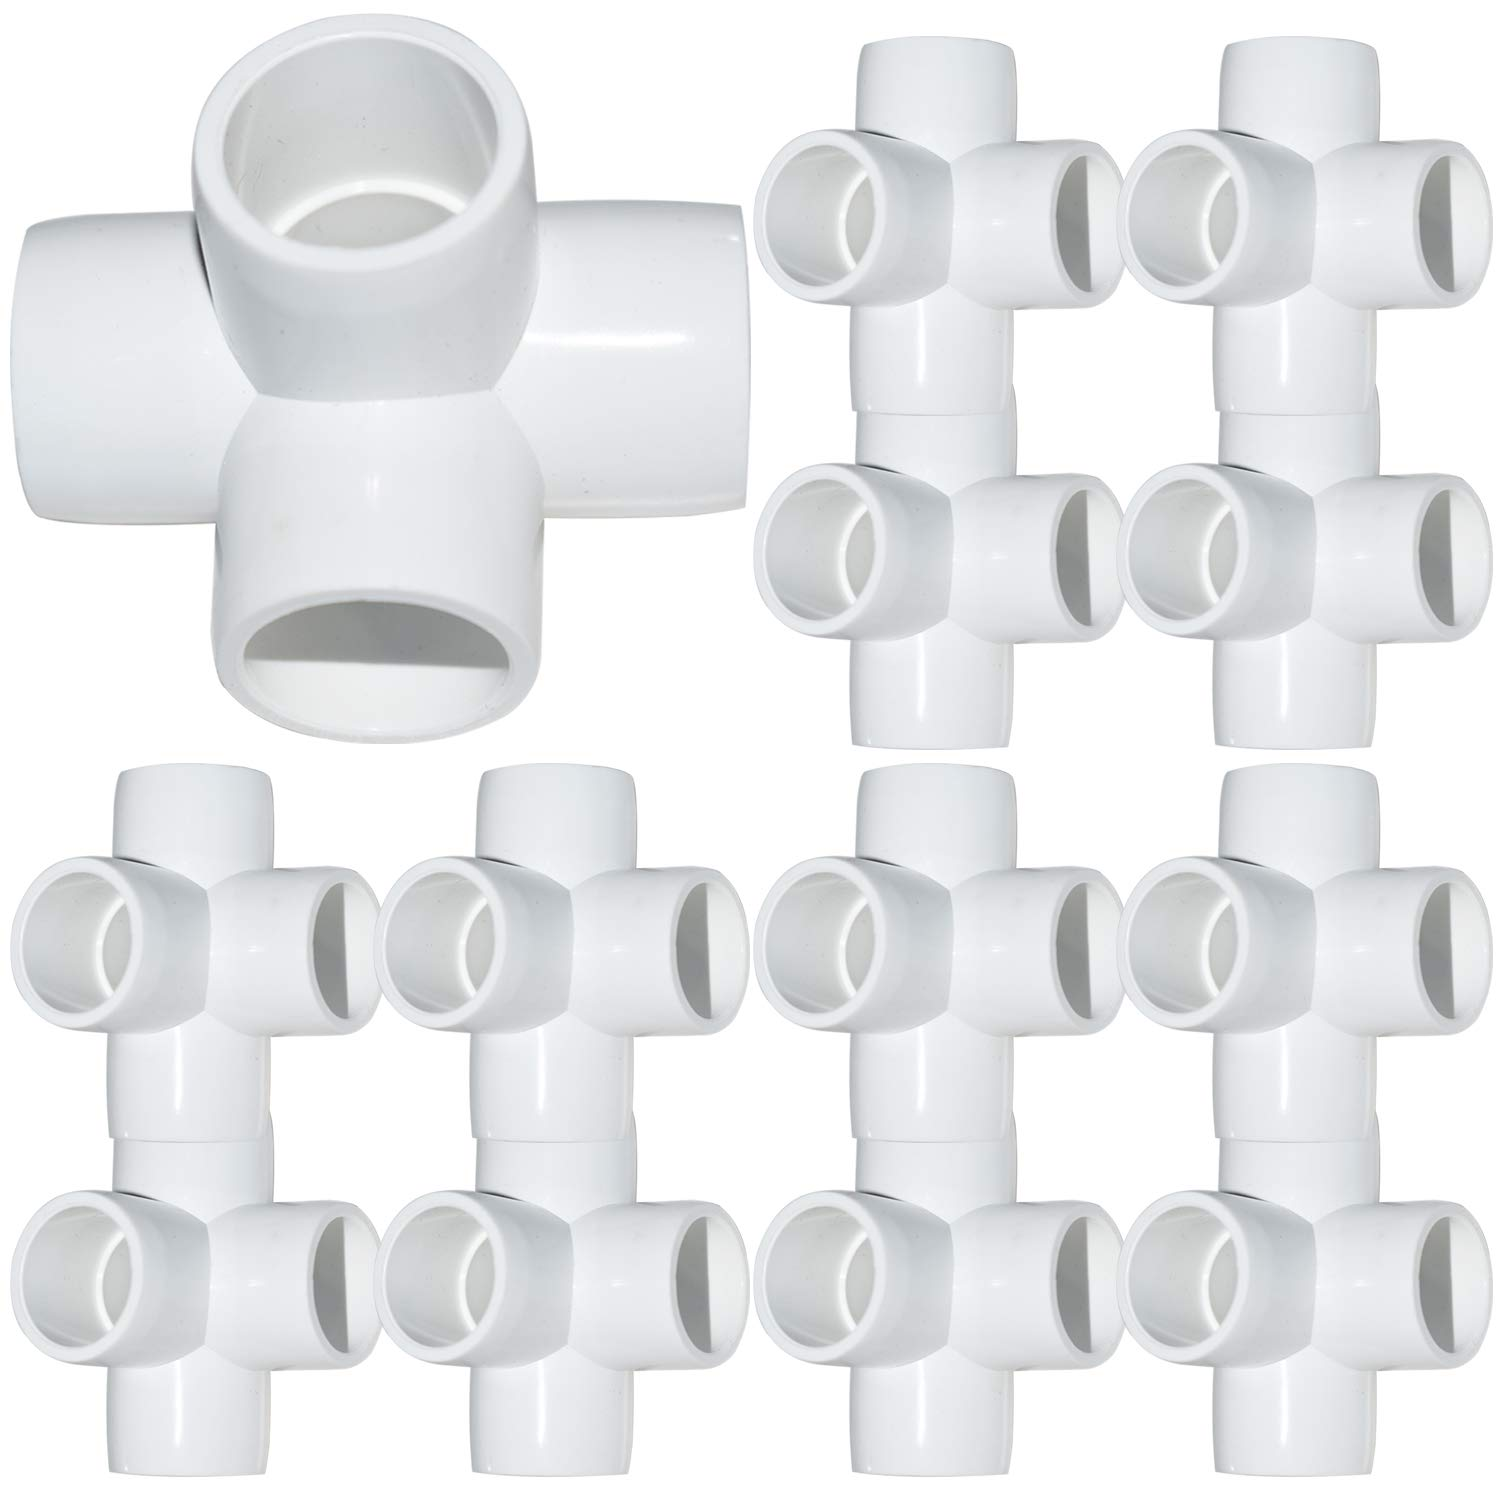 18Pack 4-Way Elbow PVC Fittings, 1/2Inch Furniture Grade PVC Fittings, Heavy Duty 4 Way Side Outlet Tees, Corner Fittings for Building PVC Furniture Greenhouse Shed Pipe Fittings Tent Connection